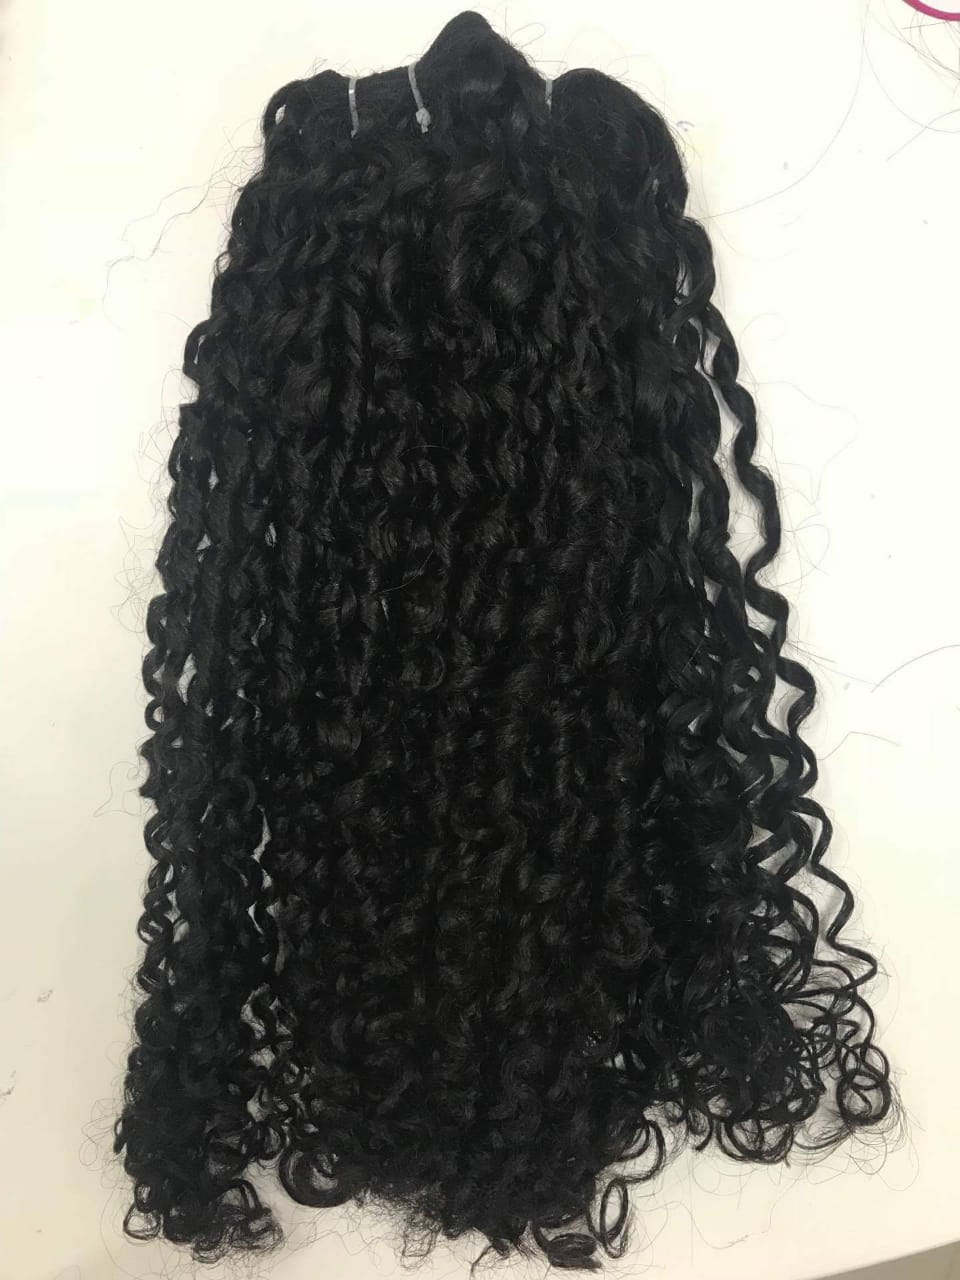 20 Inches Curly Weave Hair Vietnamese Hair Extensions